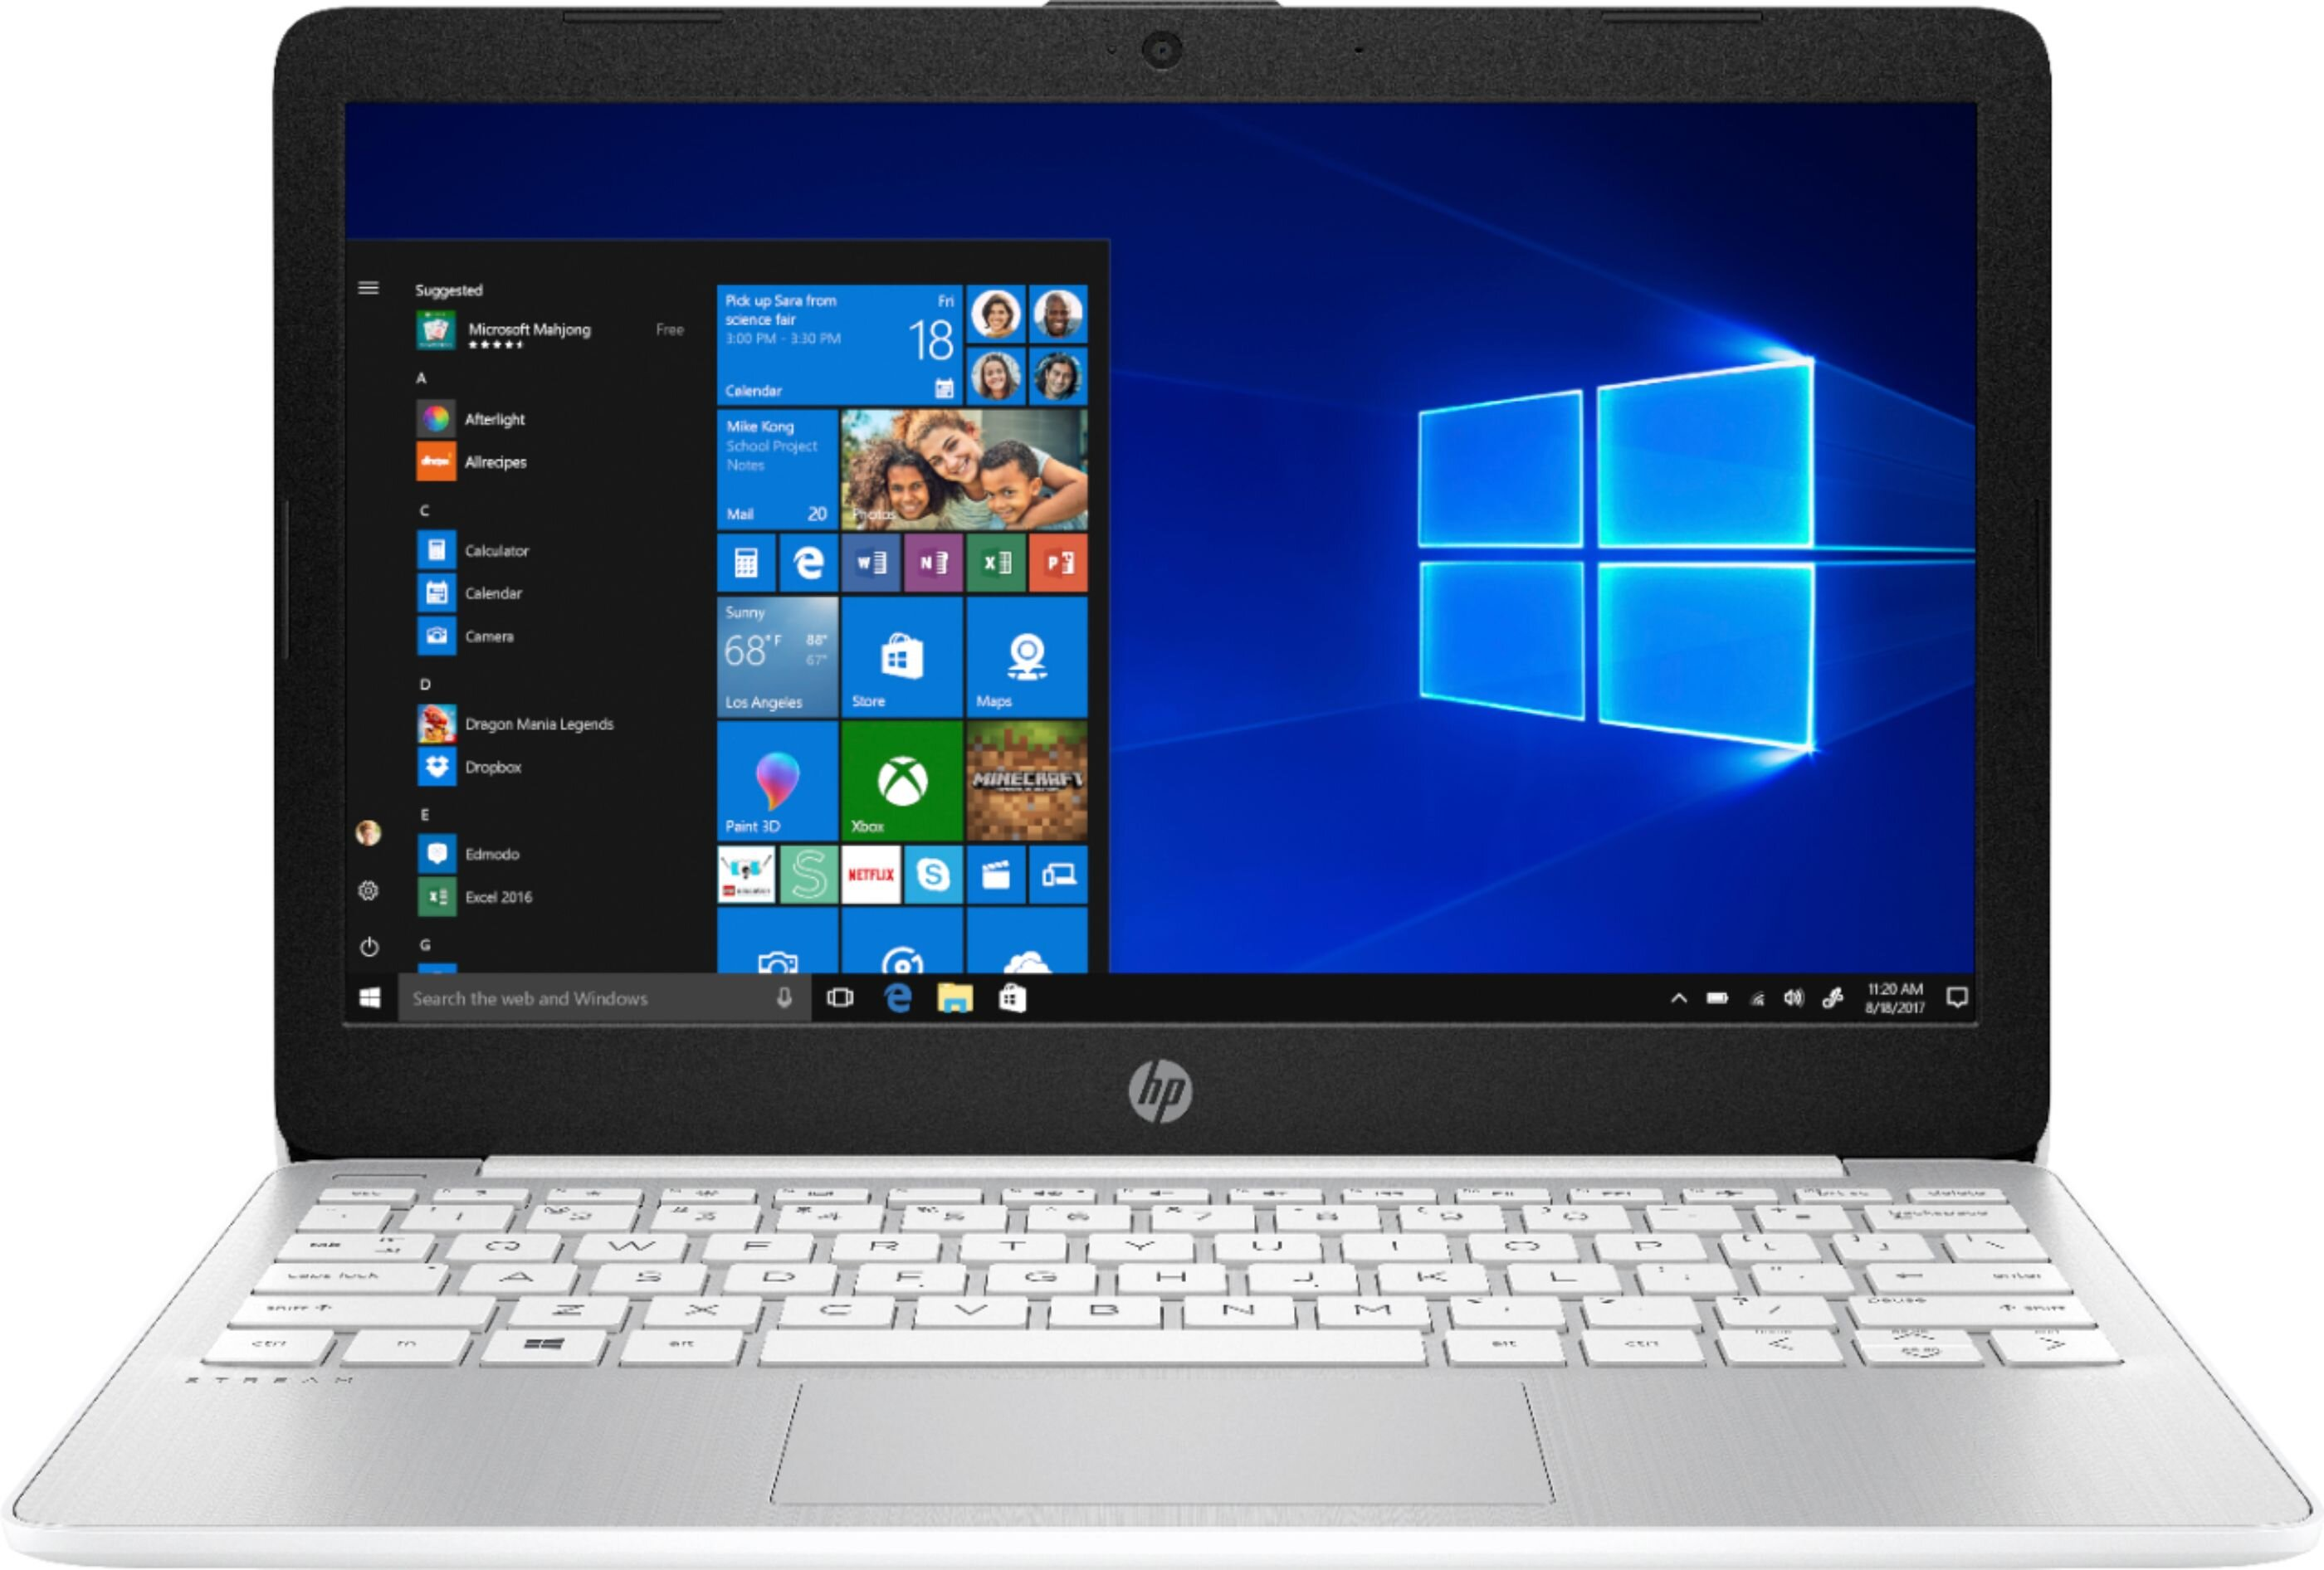 "HP - Stream 11.6"" Laptop - Intel Celeron - 4GB Memory - 64GB eMMC Flash Memory - Diamond White (11-ak0012dx)"